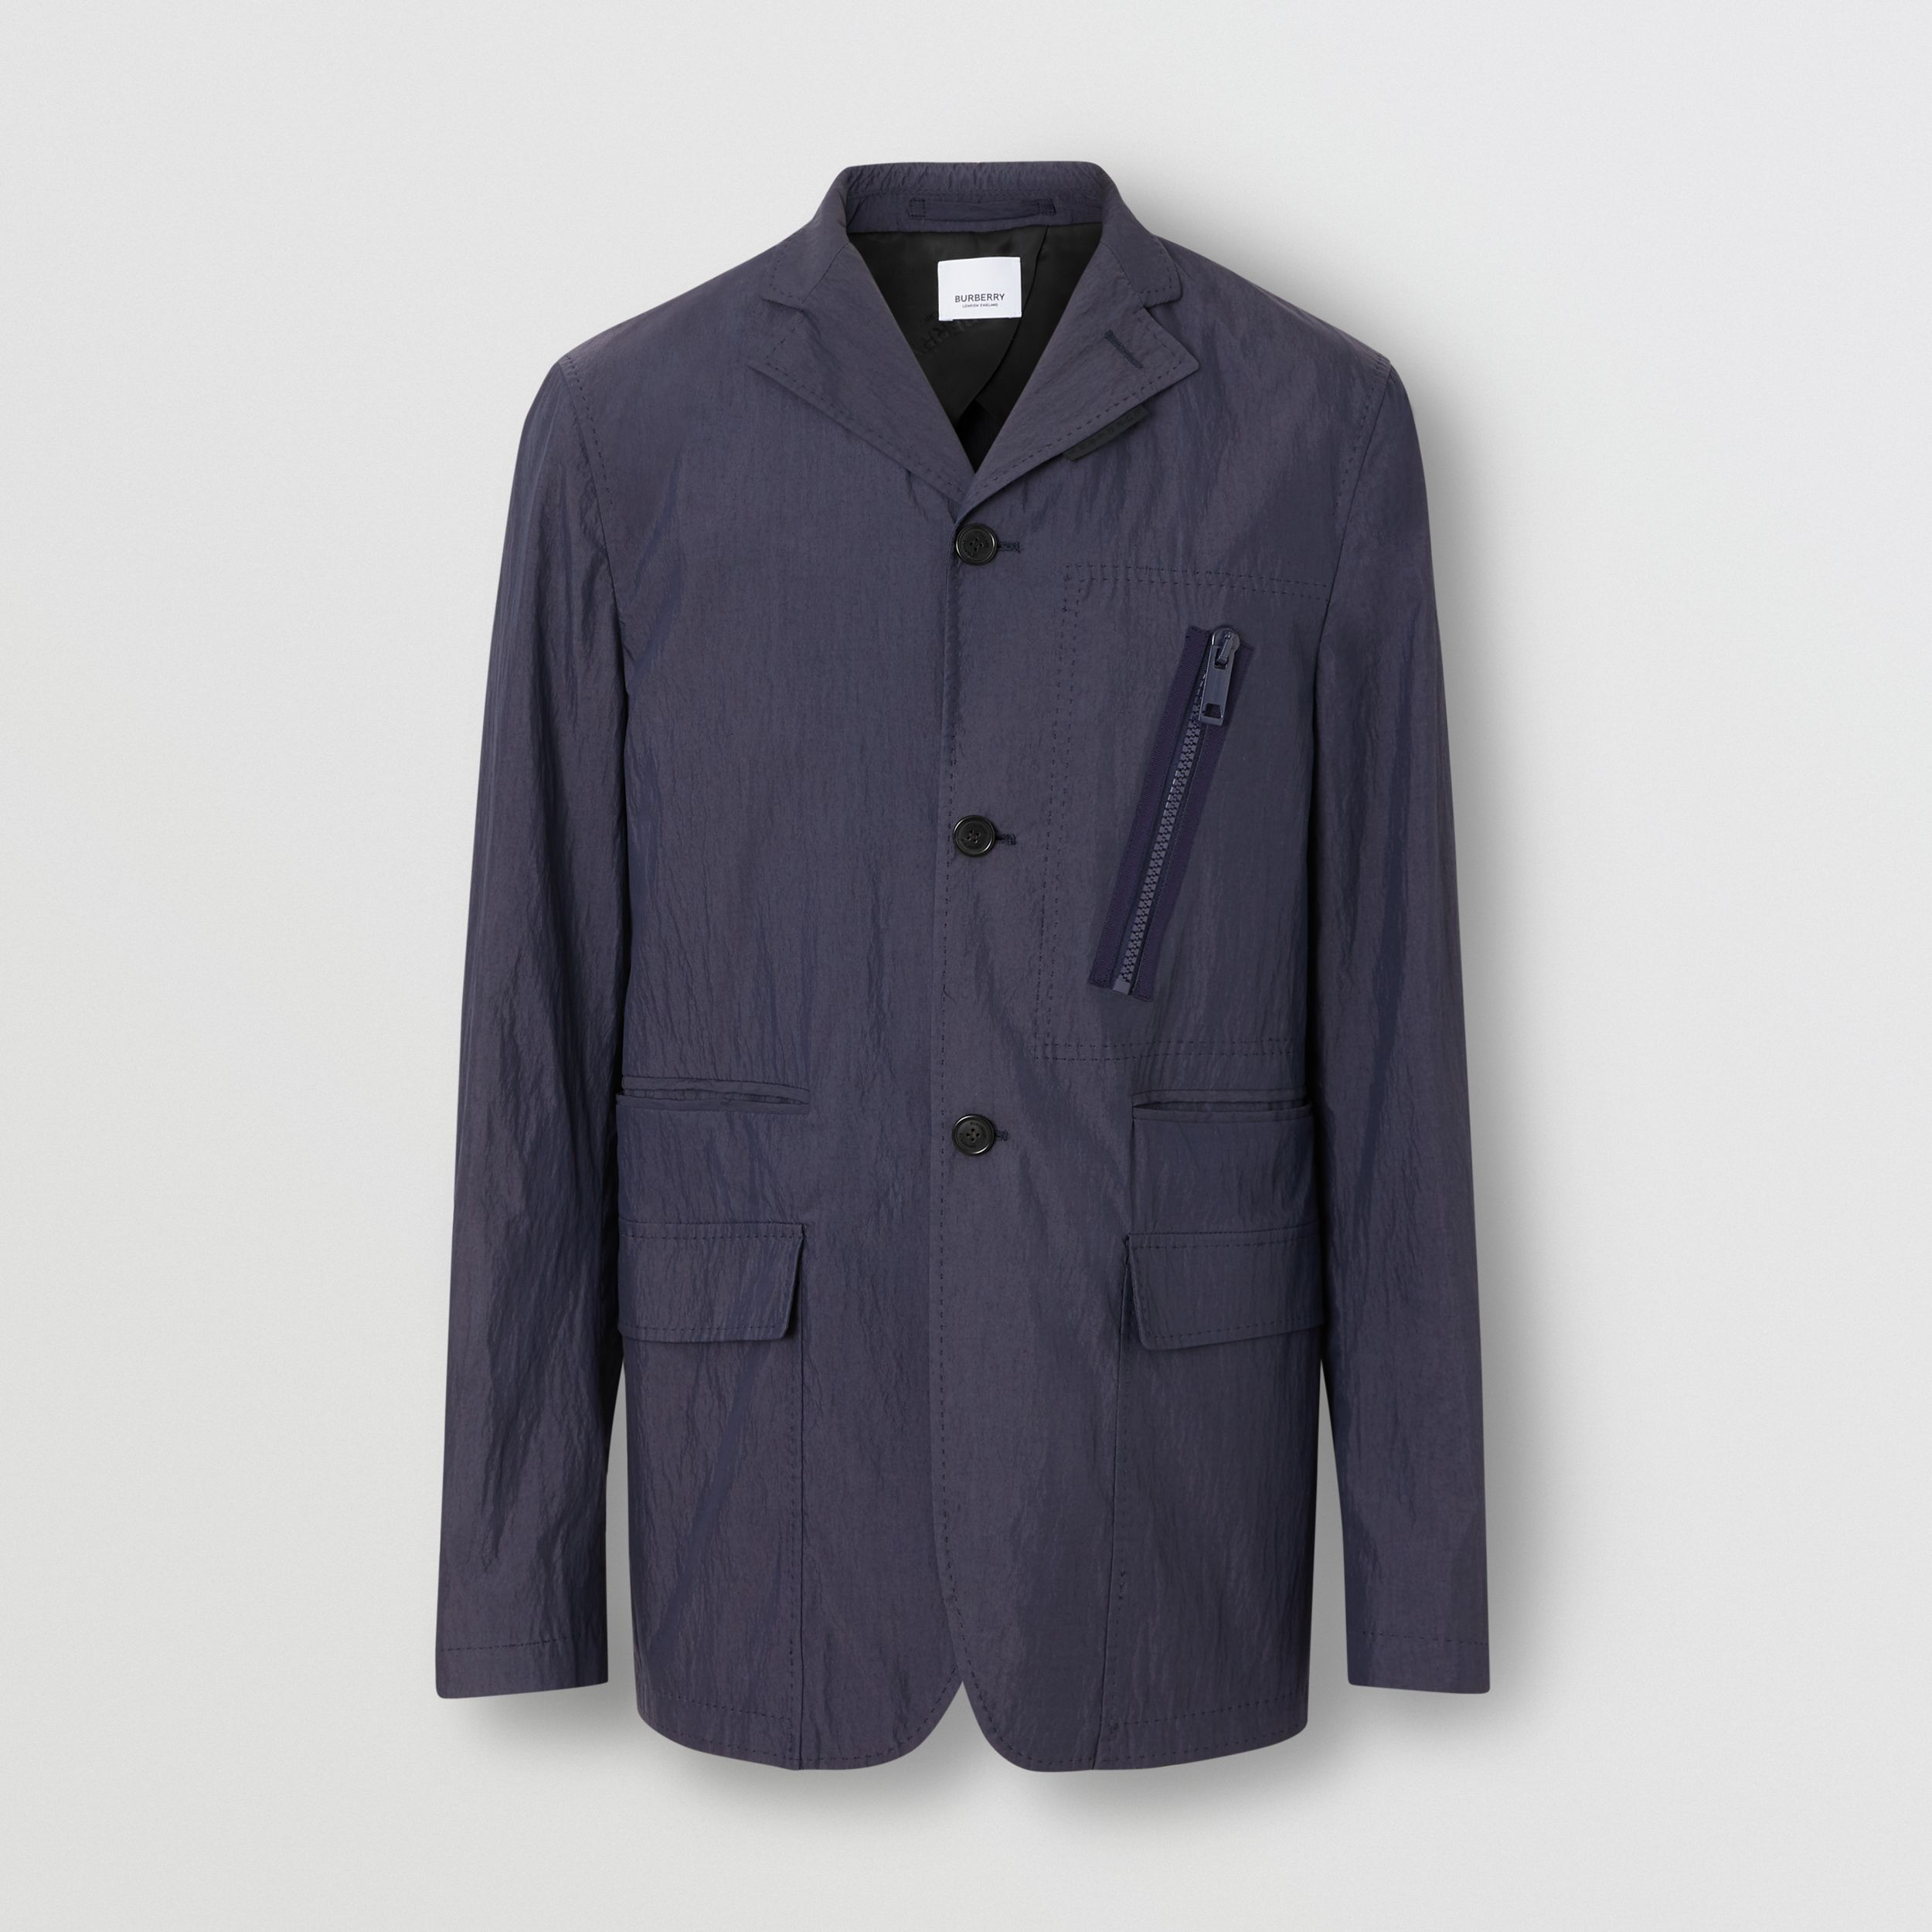 Crinkled Cotton Blend Tailored Jacket in Navy | Burberry - 4